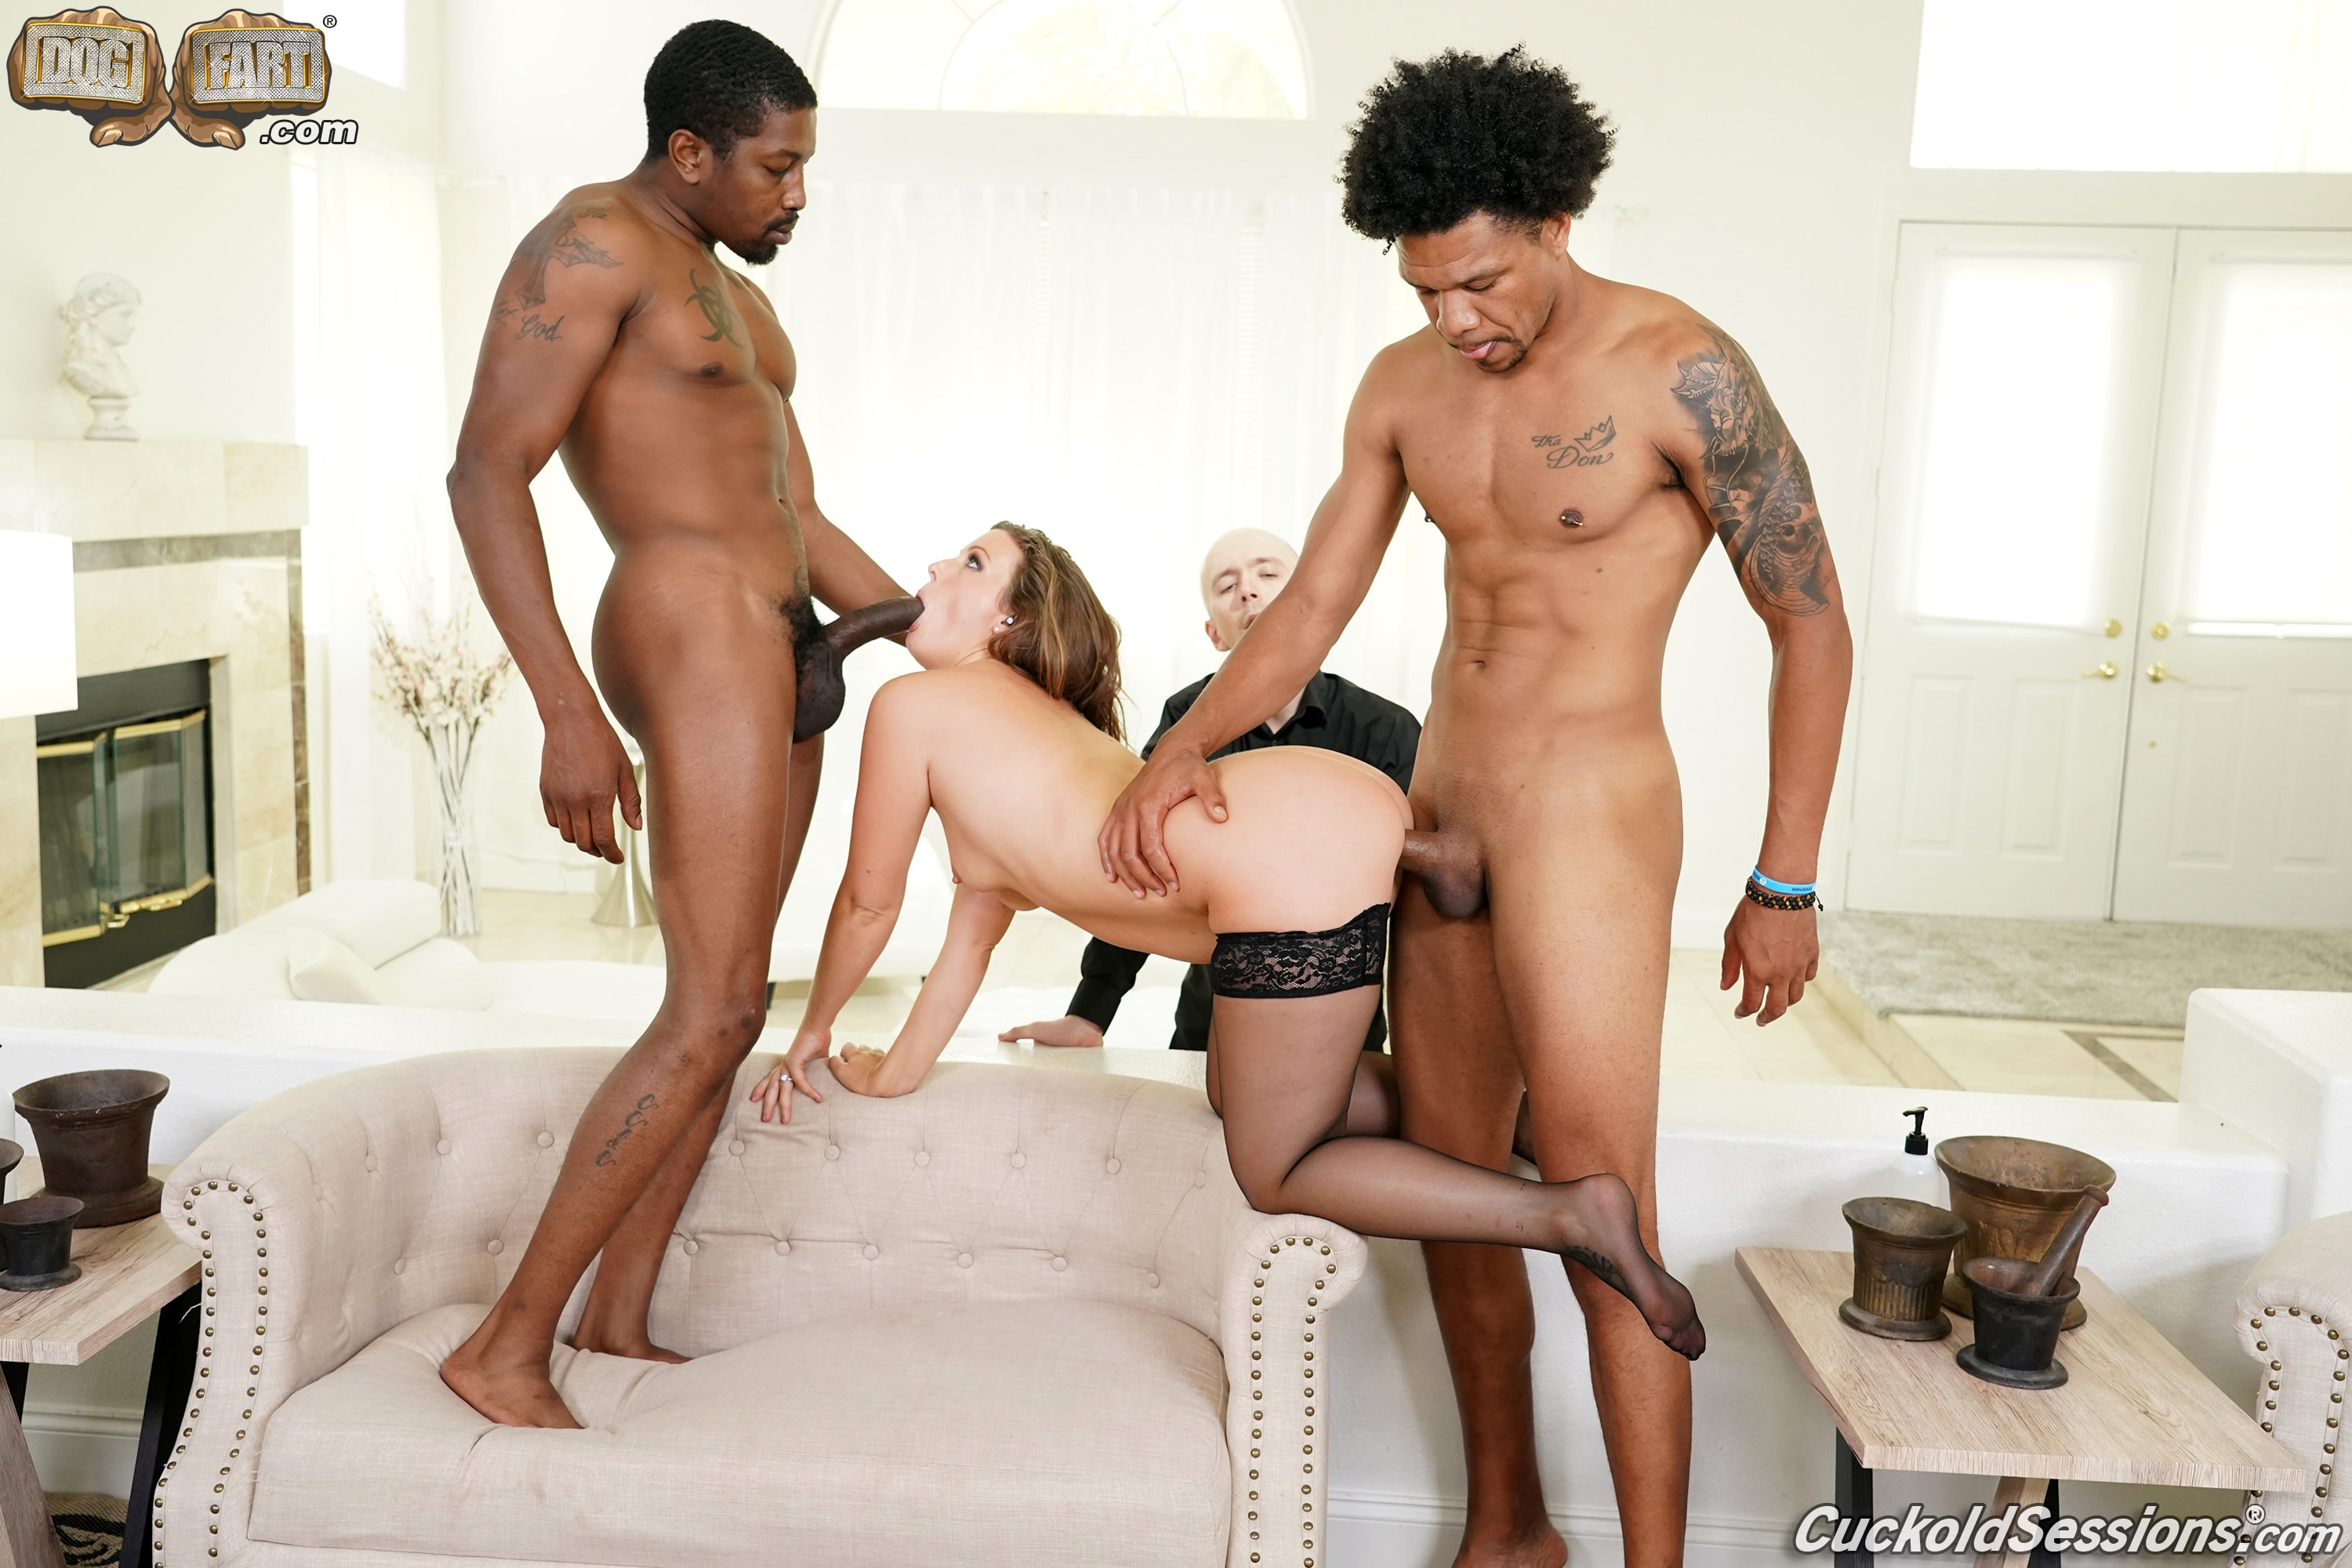 Dogfart '- Cuckold Sessions' starring Febby Twigs (Photo 21)